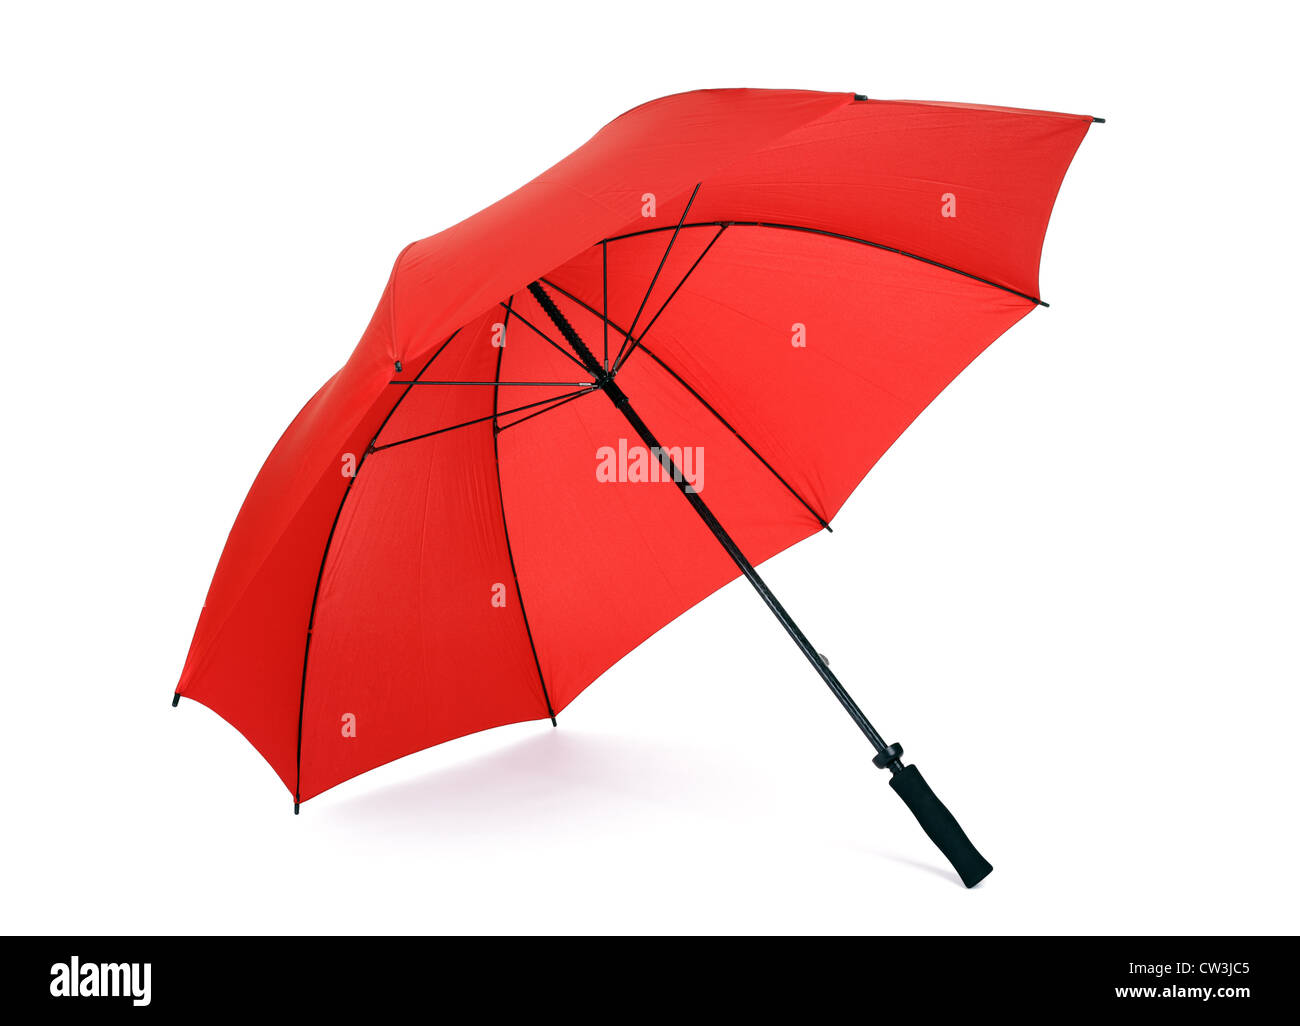 Red umbrella isolated - Stock Image